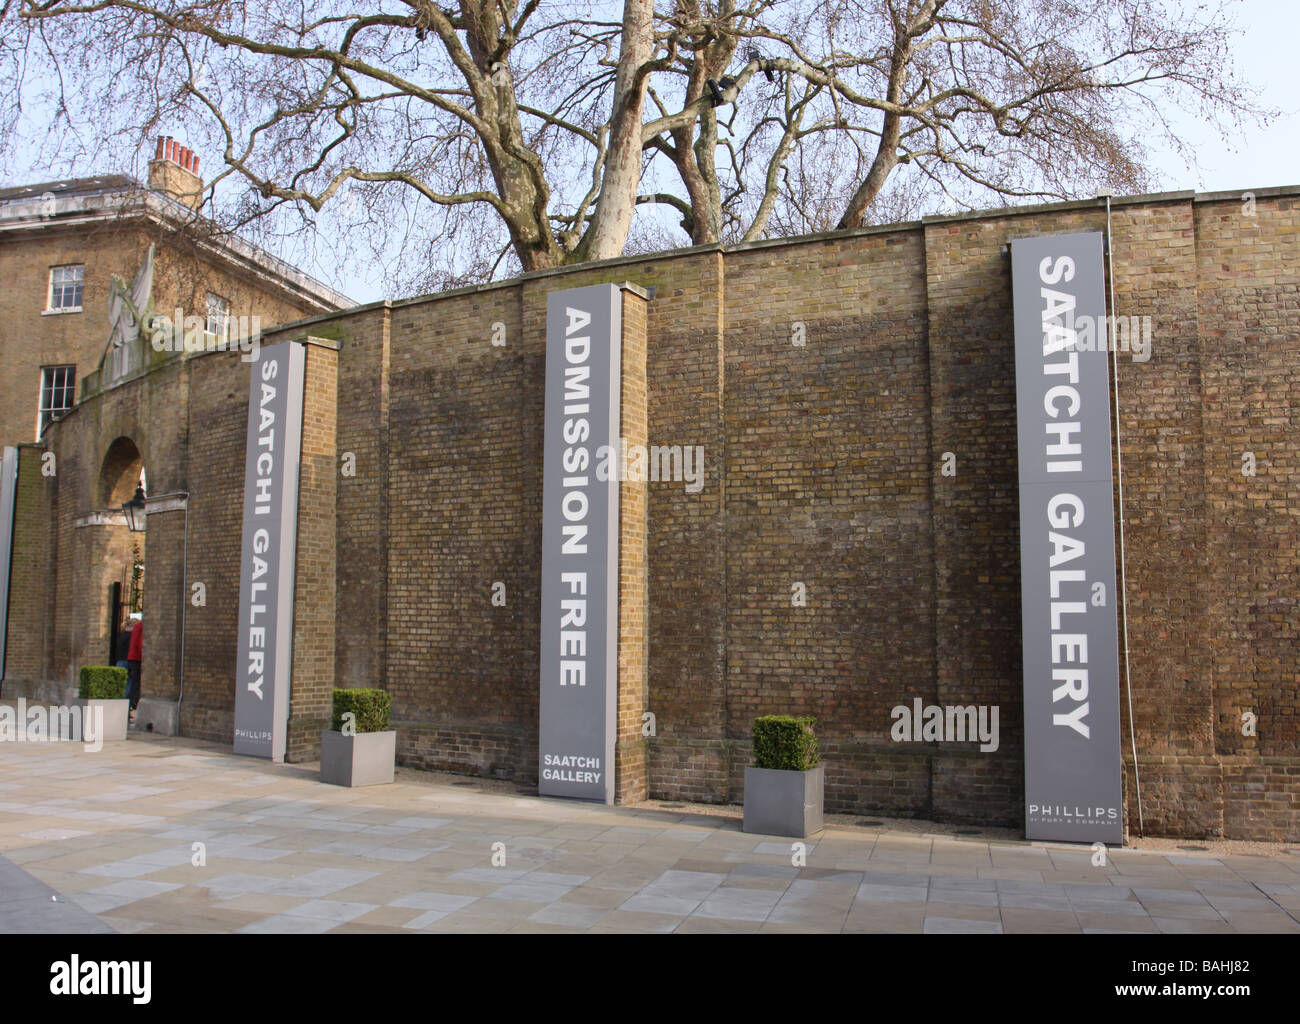 street entrance to Saatchi Gallery on King Road Chelsea London England  April 2009 - Stock Image